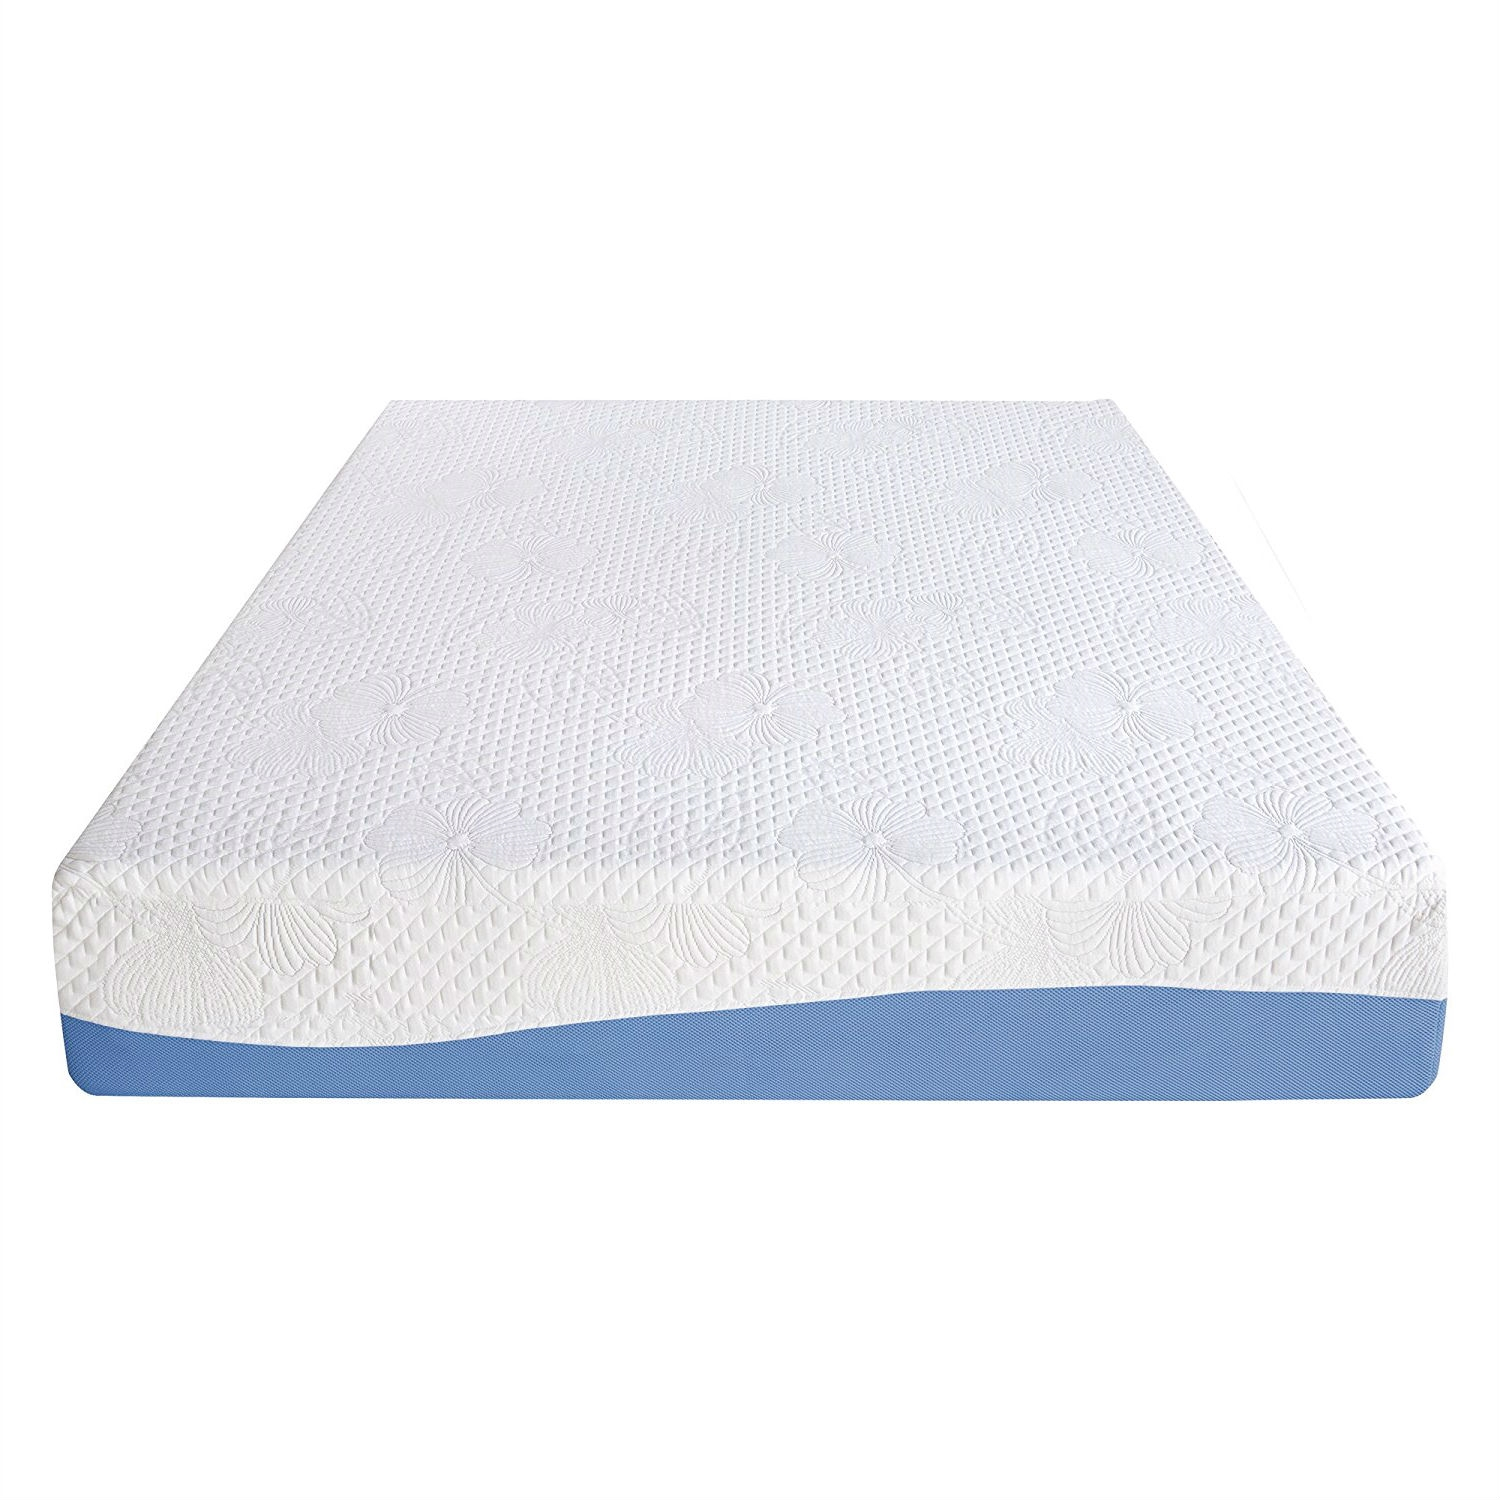 California King 10 Inch Memory Foam Mattress With Gel Infused